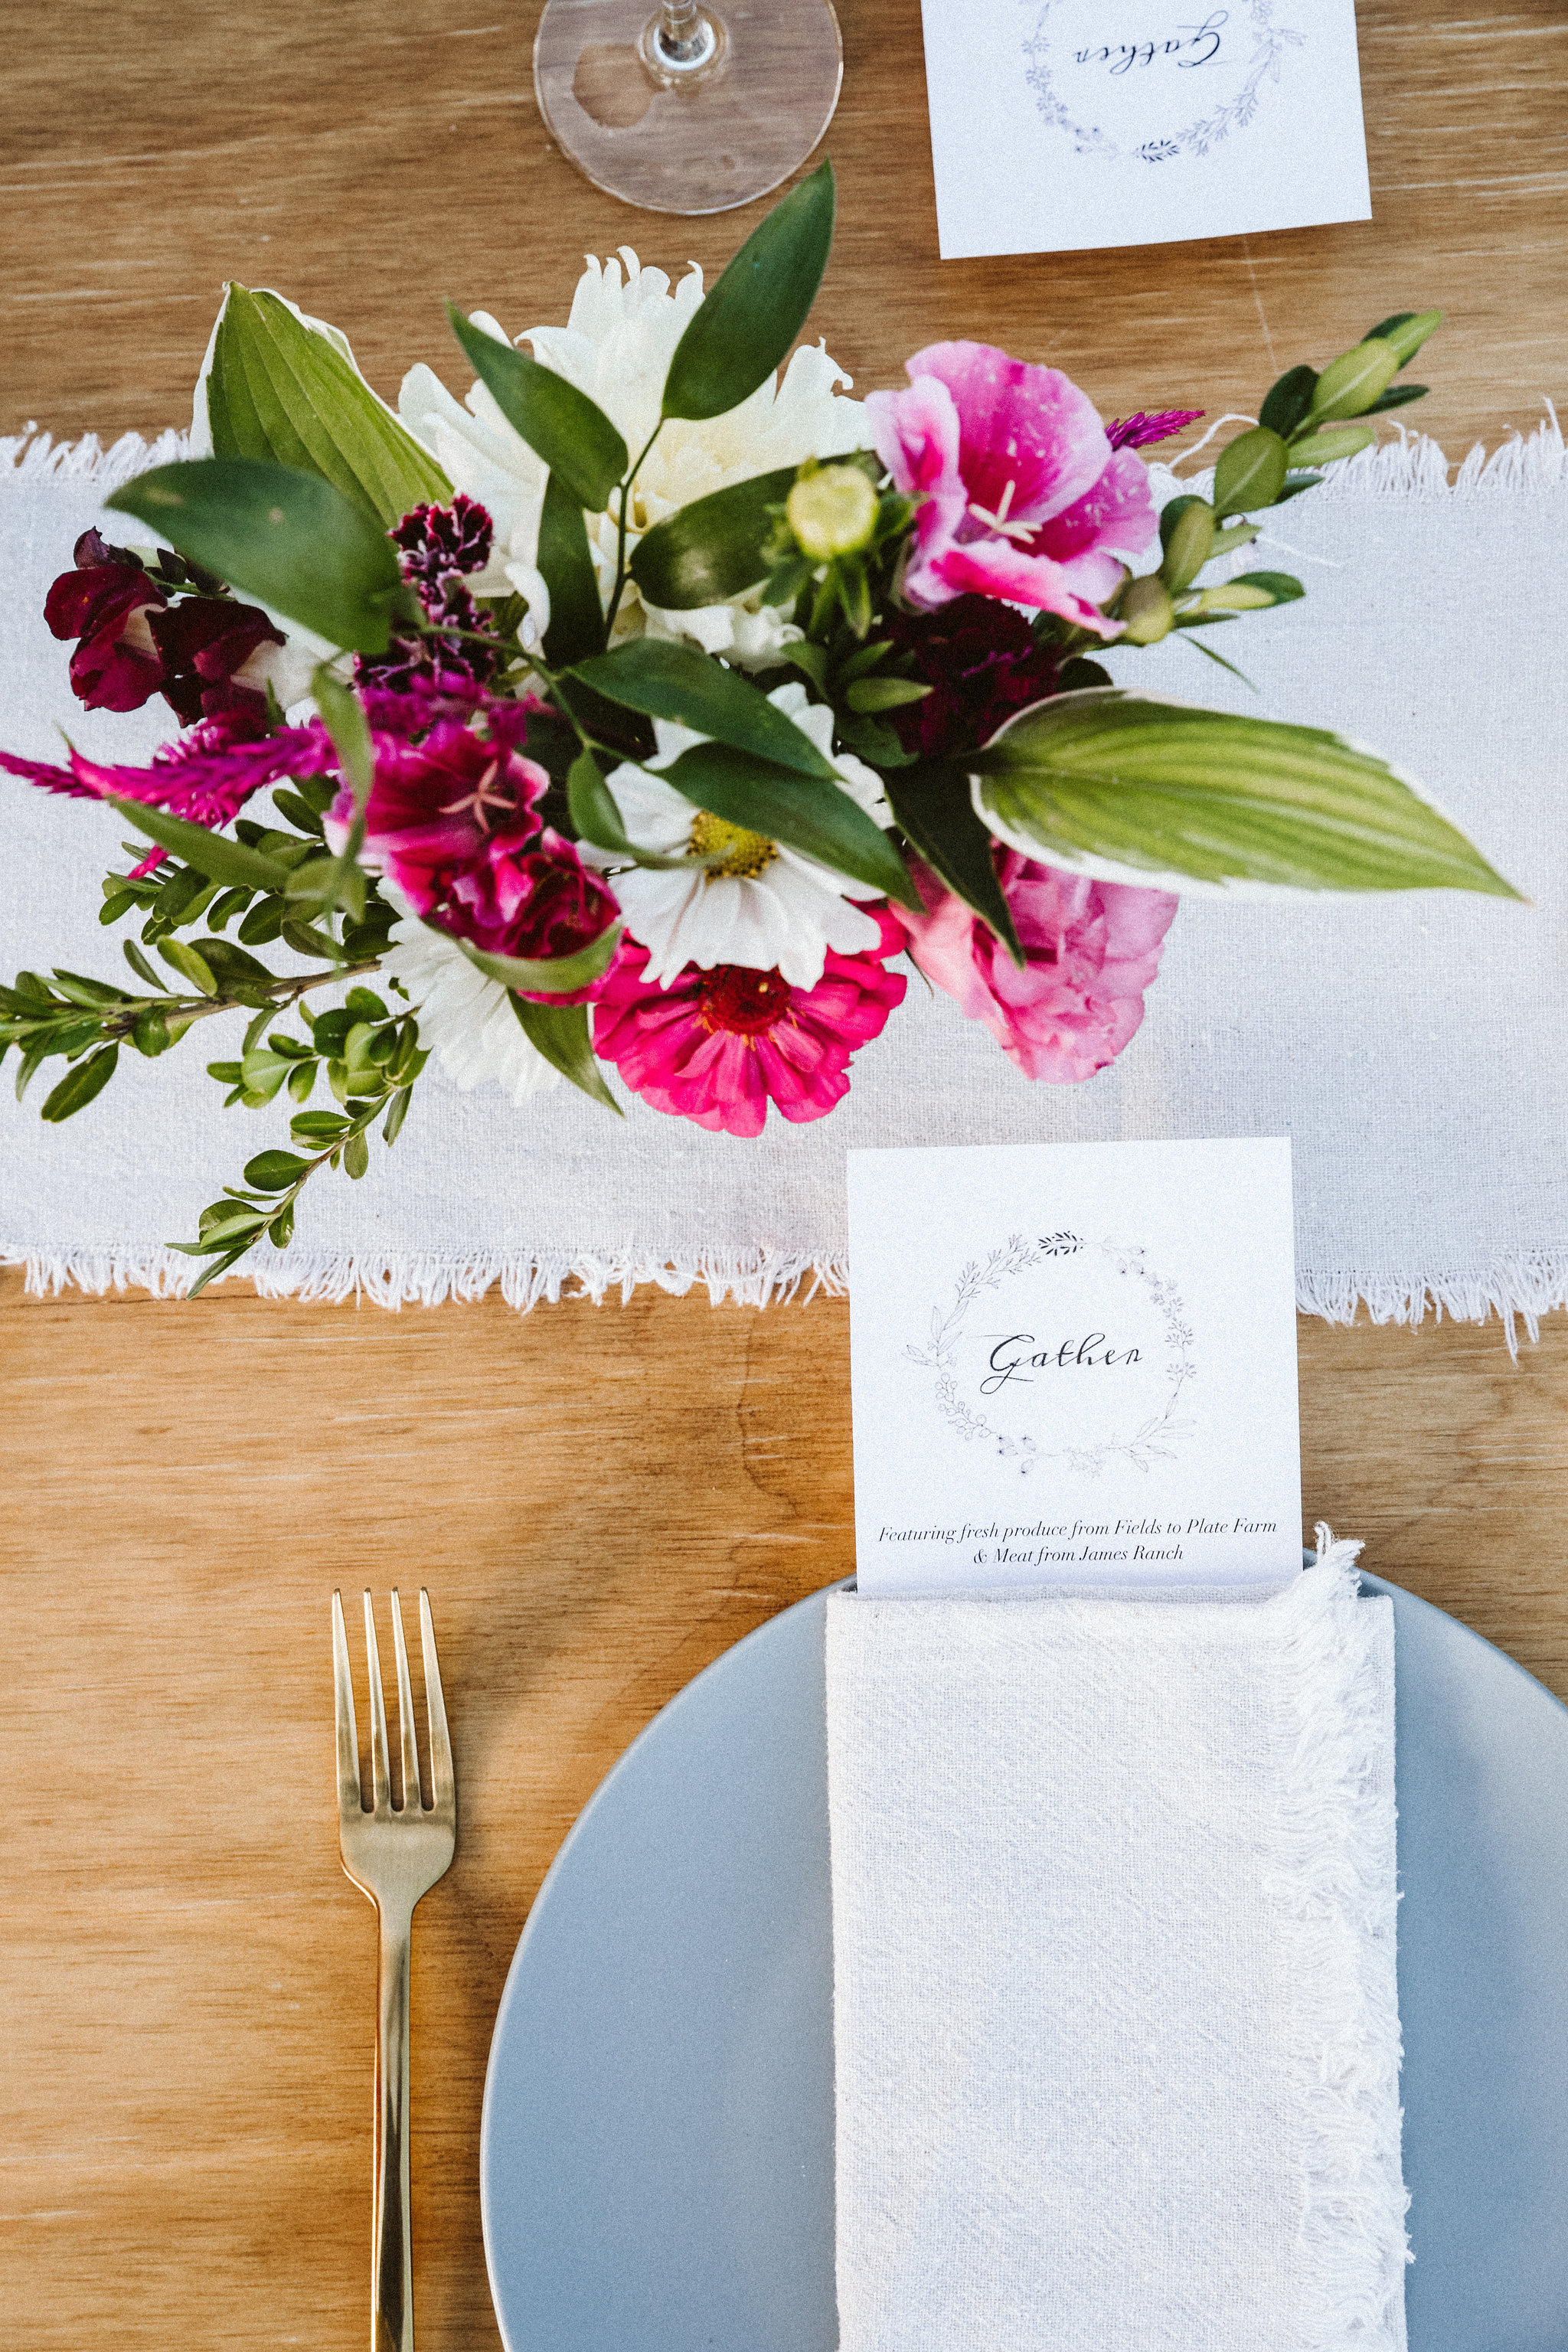 Photo by Shutterfreek / Florals by Passion Flower Farm from August Gather Pop-Up Dinner